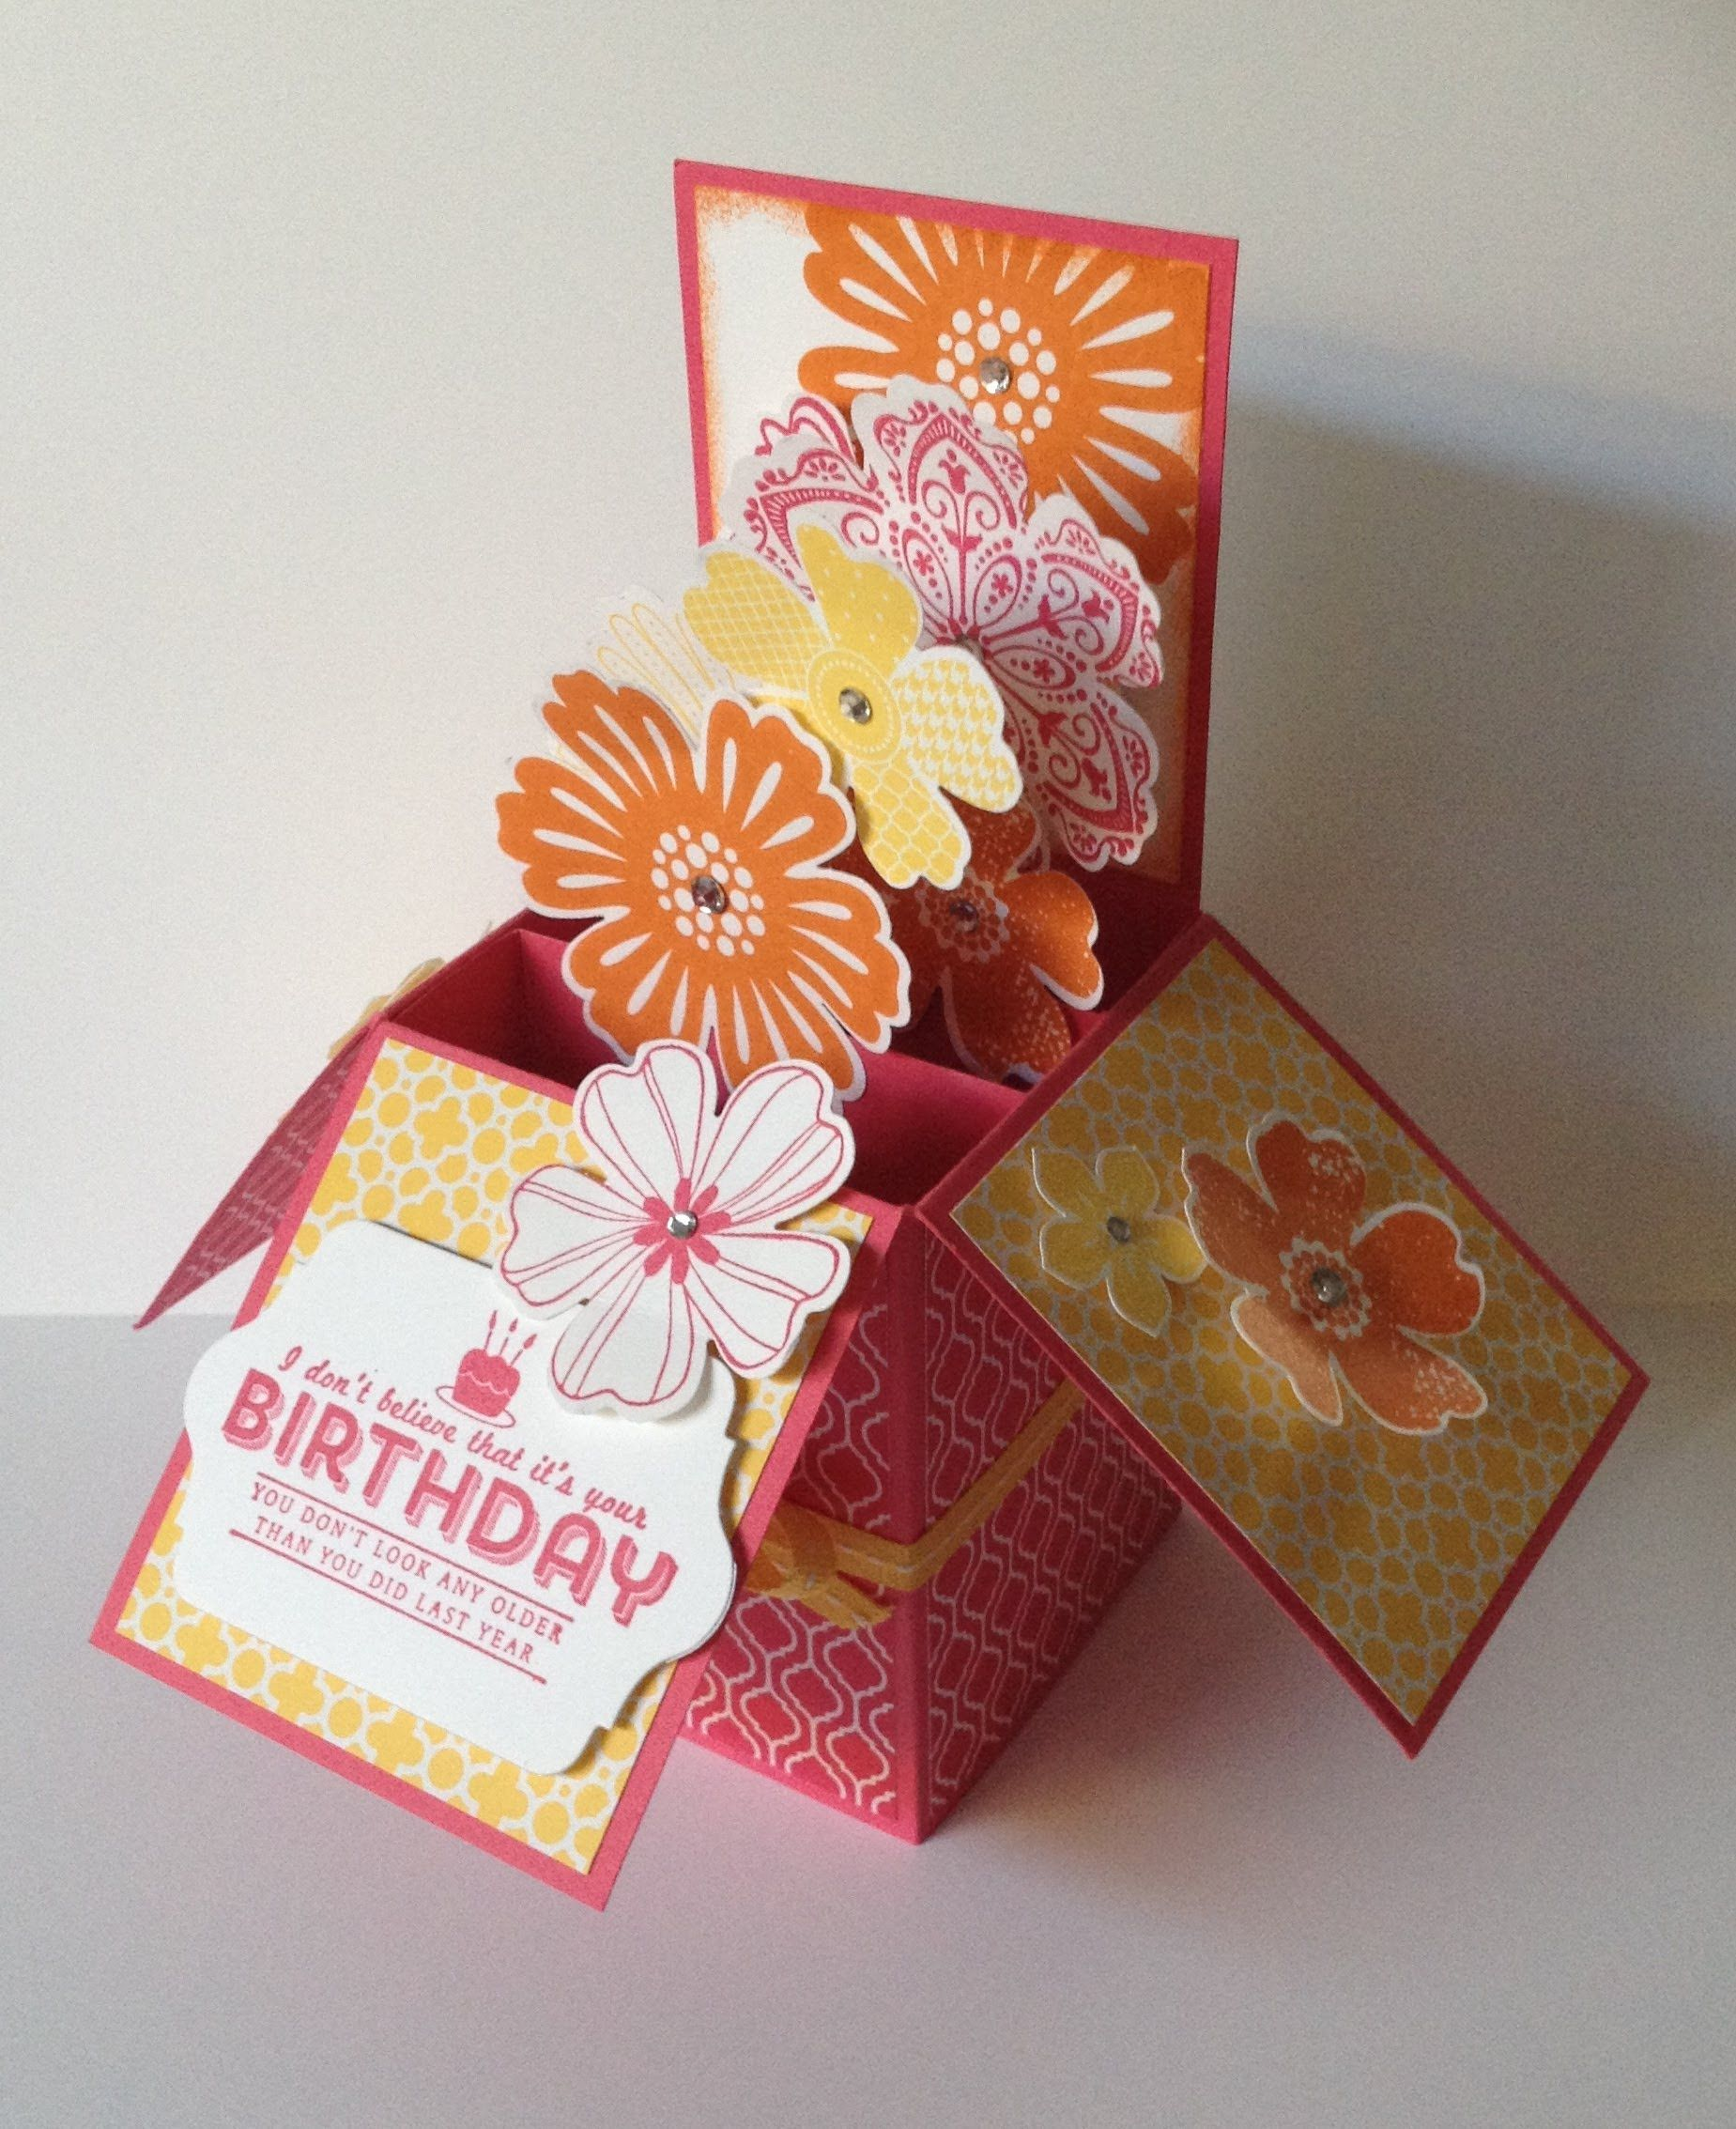 3d Folding Box Card With Giftcard Insert Using Stampin Up Products Exploding Box Card Box Cards Tutorial Card Box